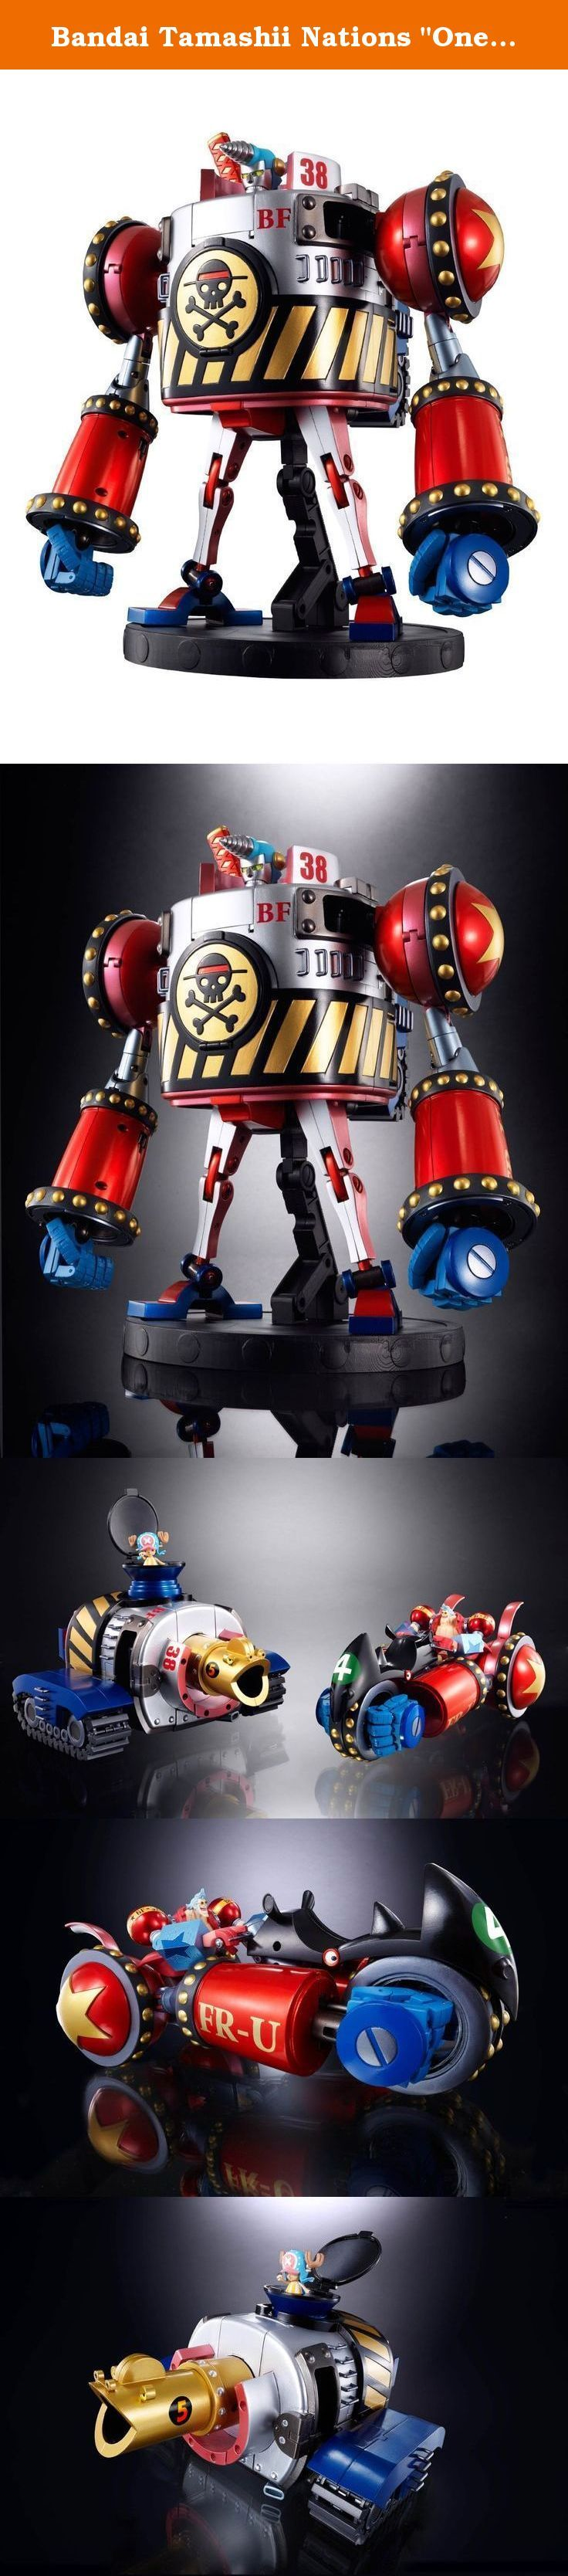 "Bandai Tamashii Nations ""One Piece"" Chogokin General Franky Action Figure. - Figurine One Piece Figuarts Zero GX-63 General Franky - Robot GX-23 du Général Franky - Taille 23cm ."